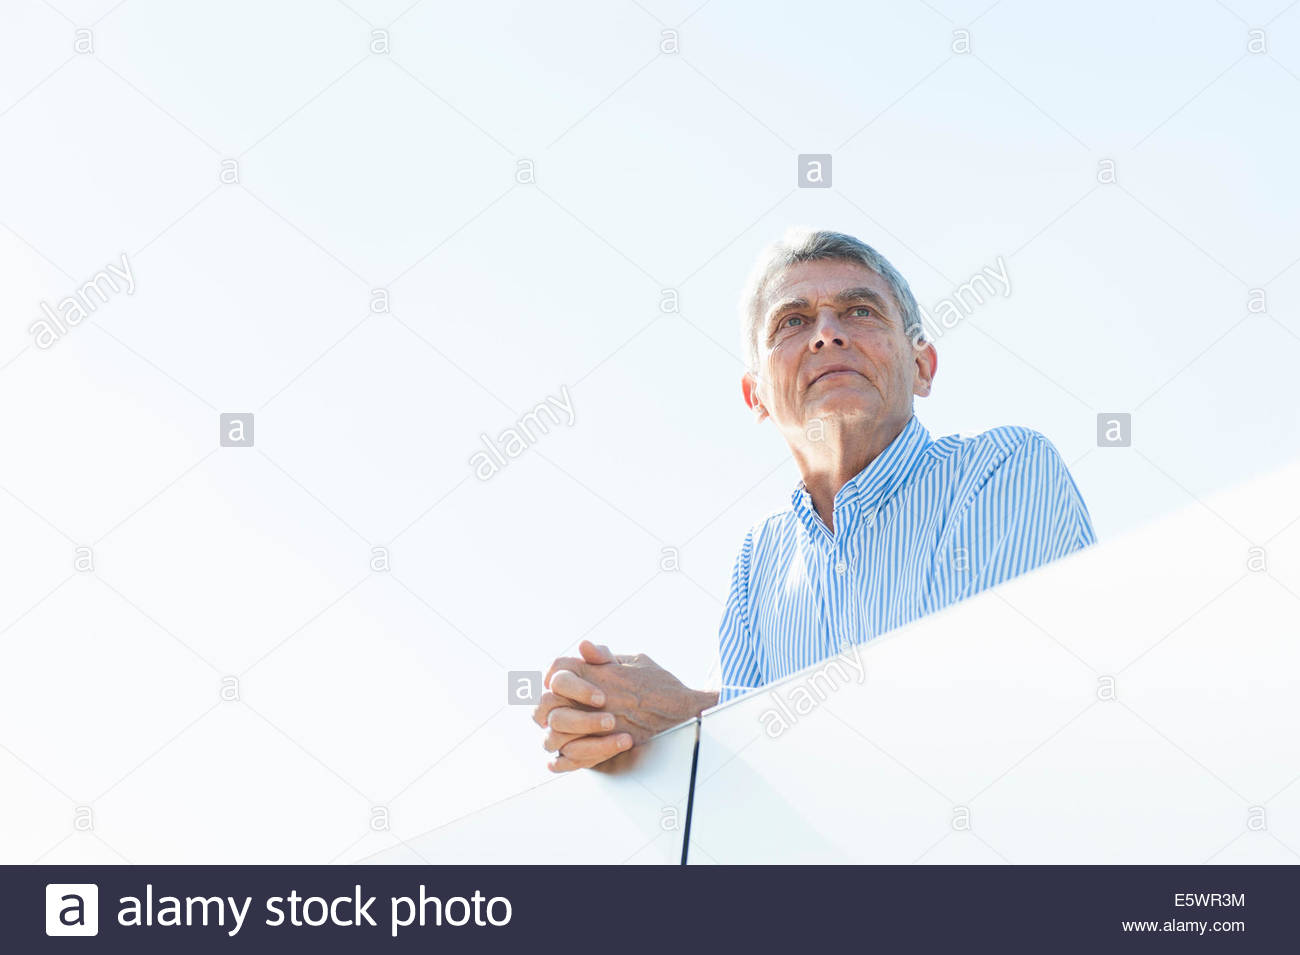 Senior adult businessman leaning on balcony - Stock Image